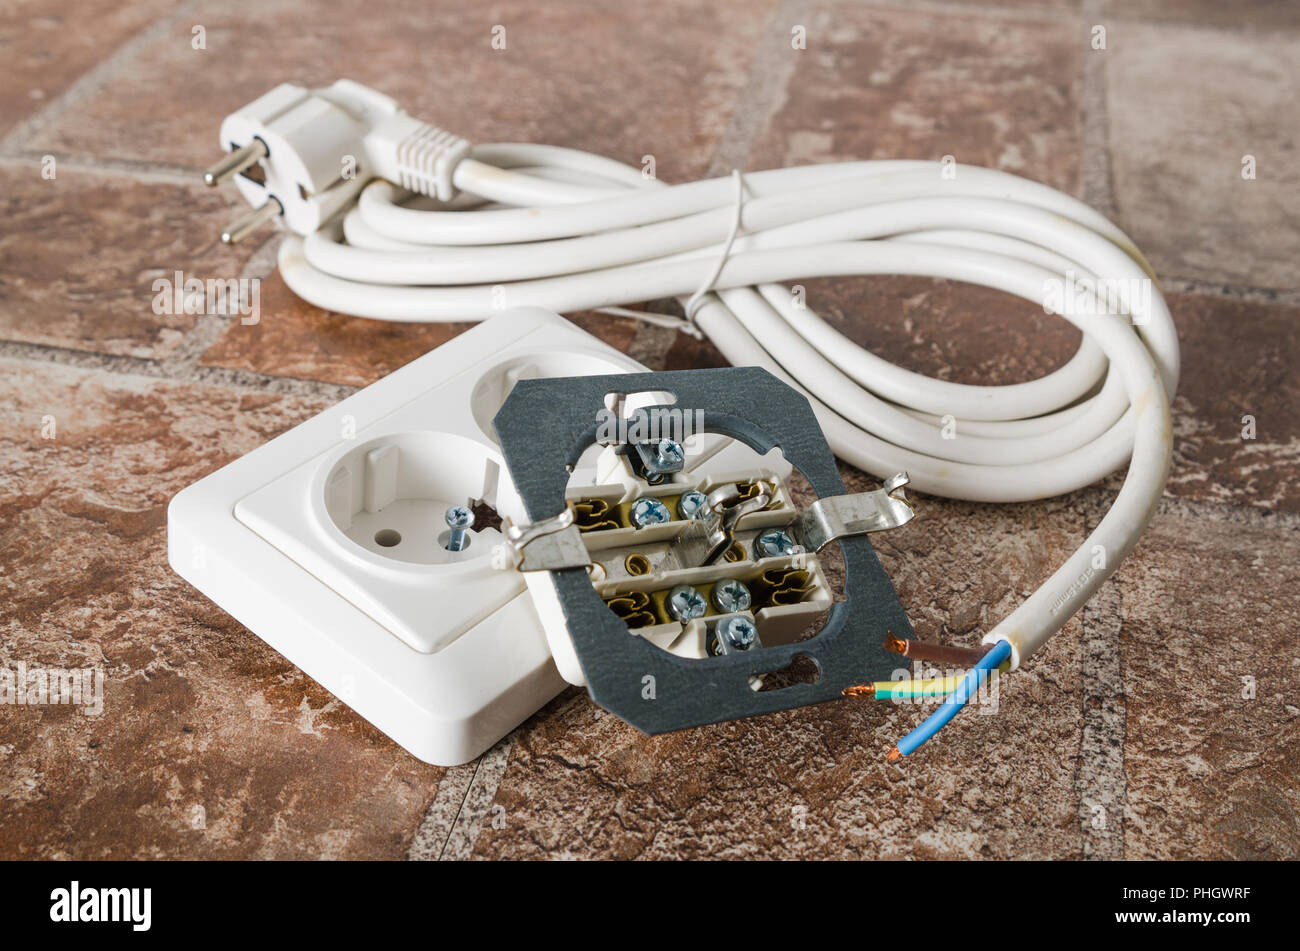 Wiring For Electrical Appliances Stock Photos Socket Electric And Cable Close Up Image